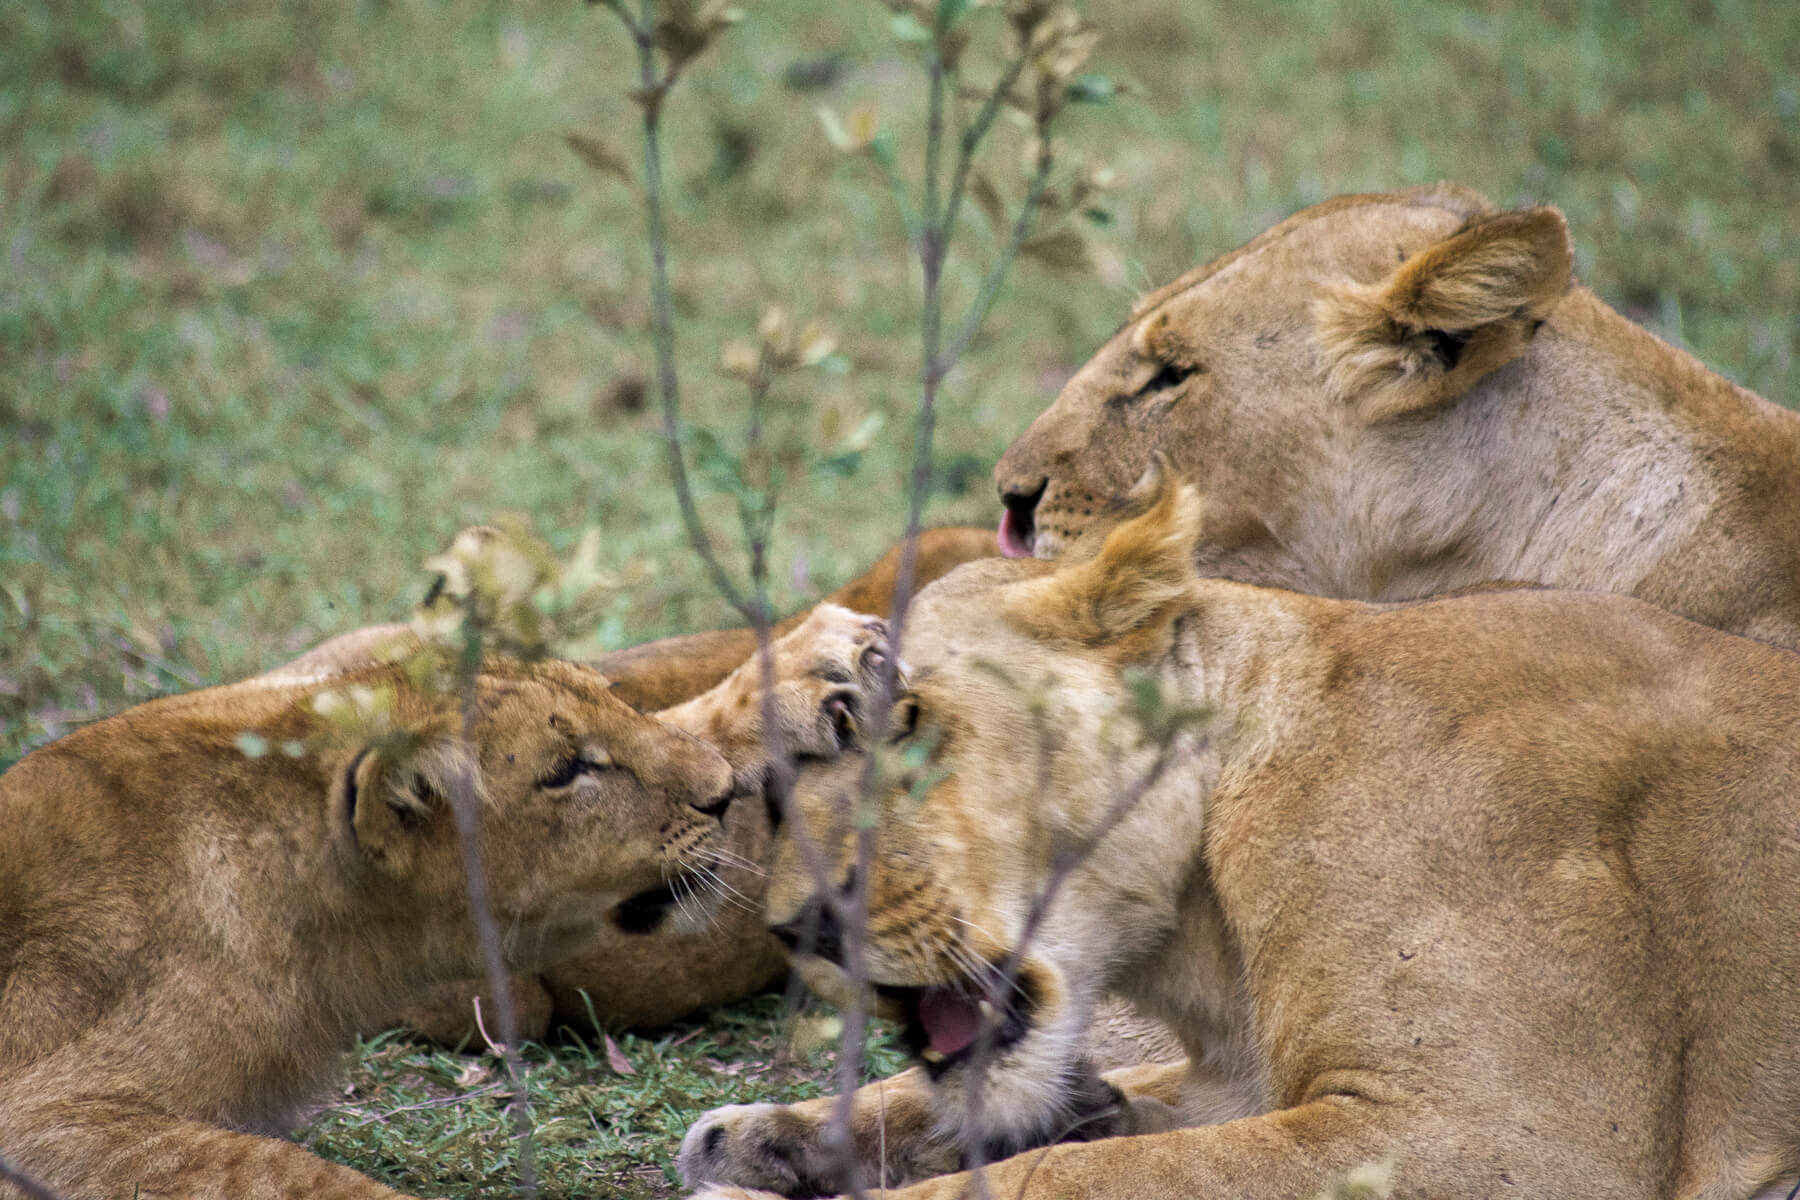 A lion pride playing on the grass - A baby hitting his mother in the face